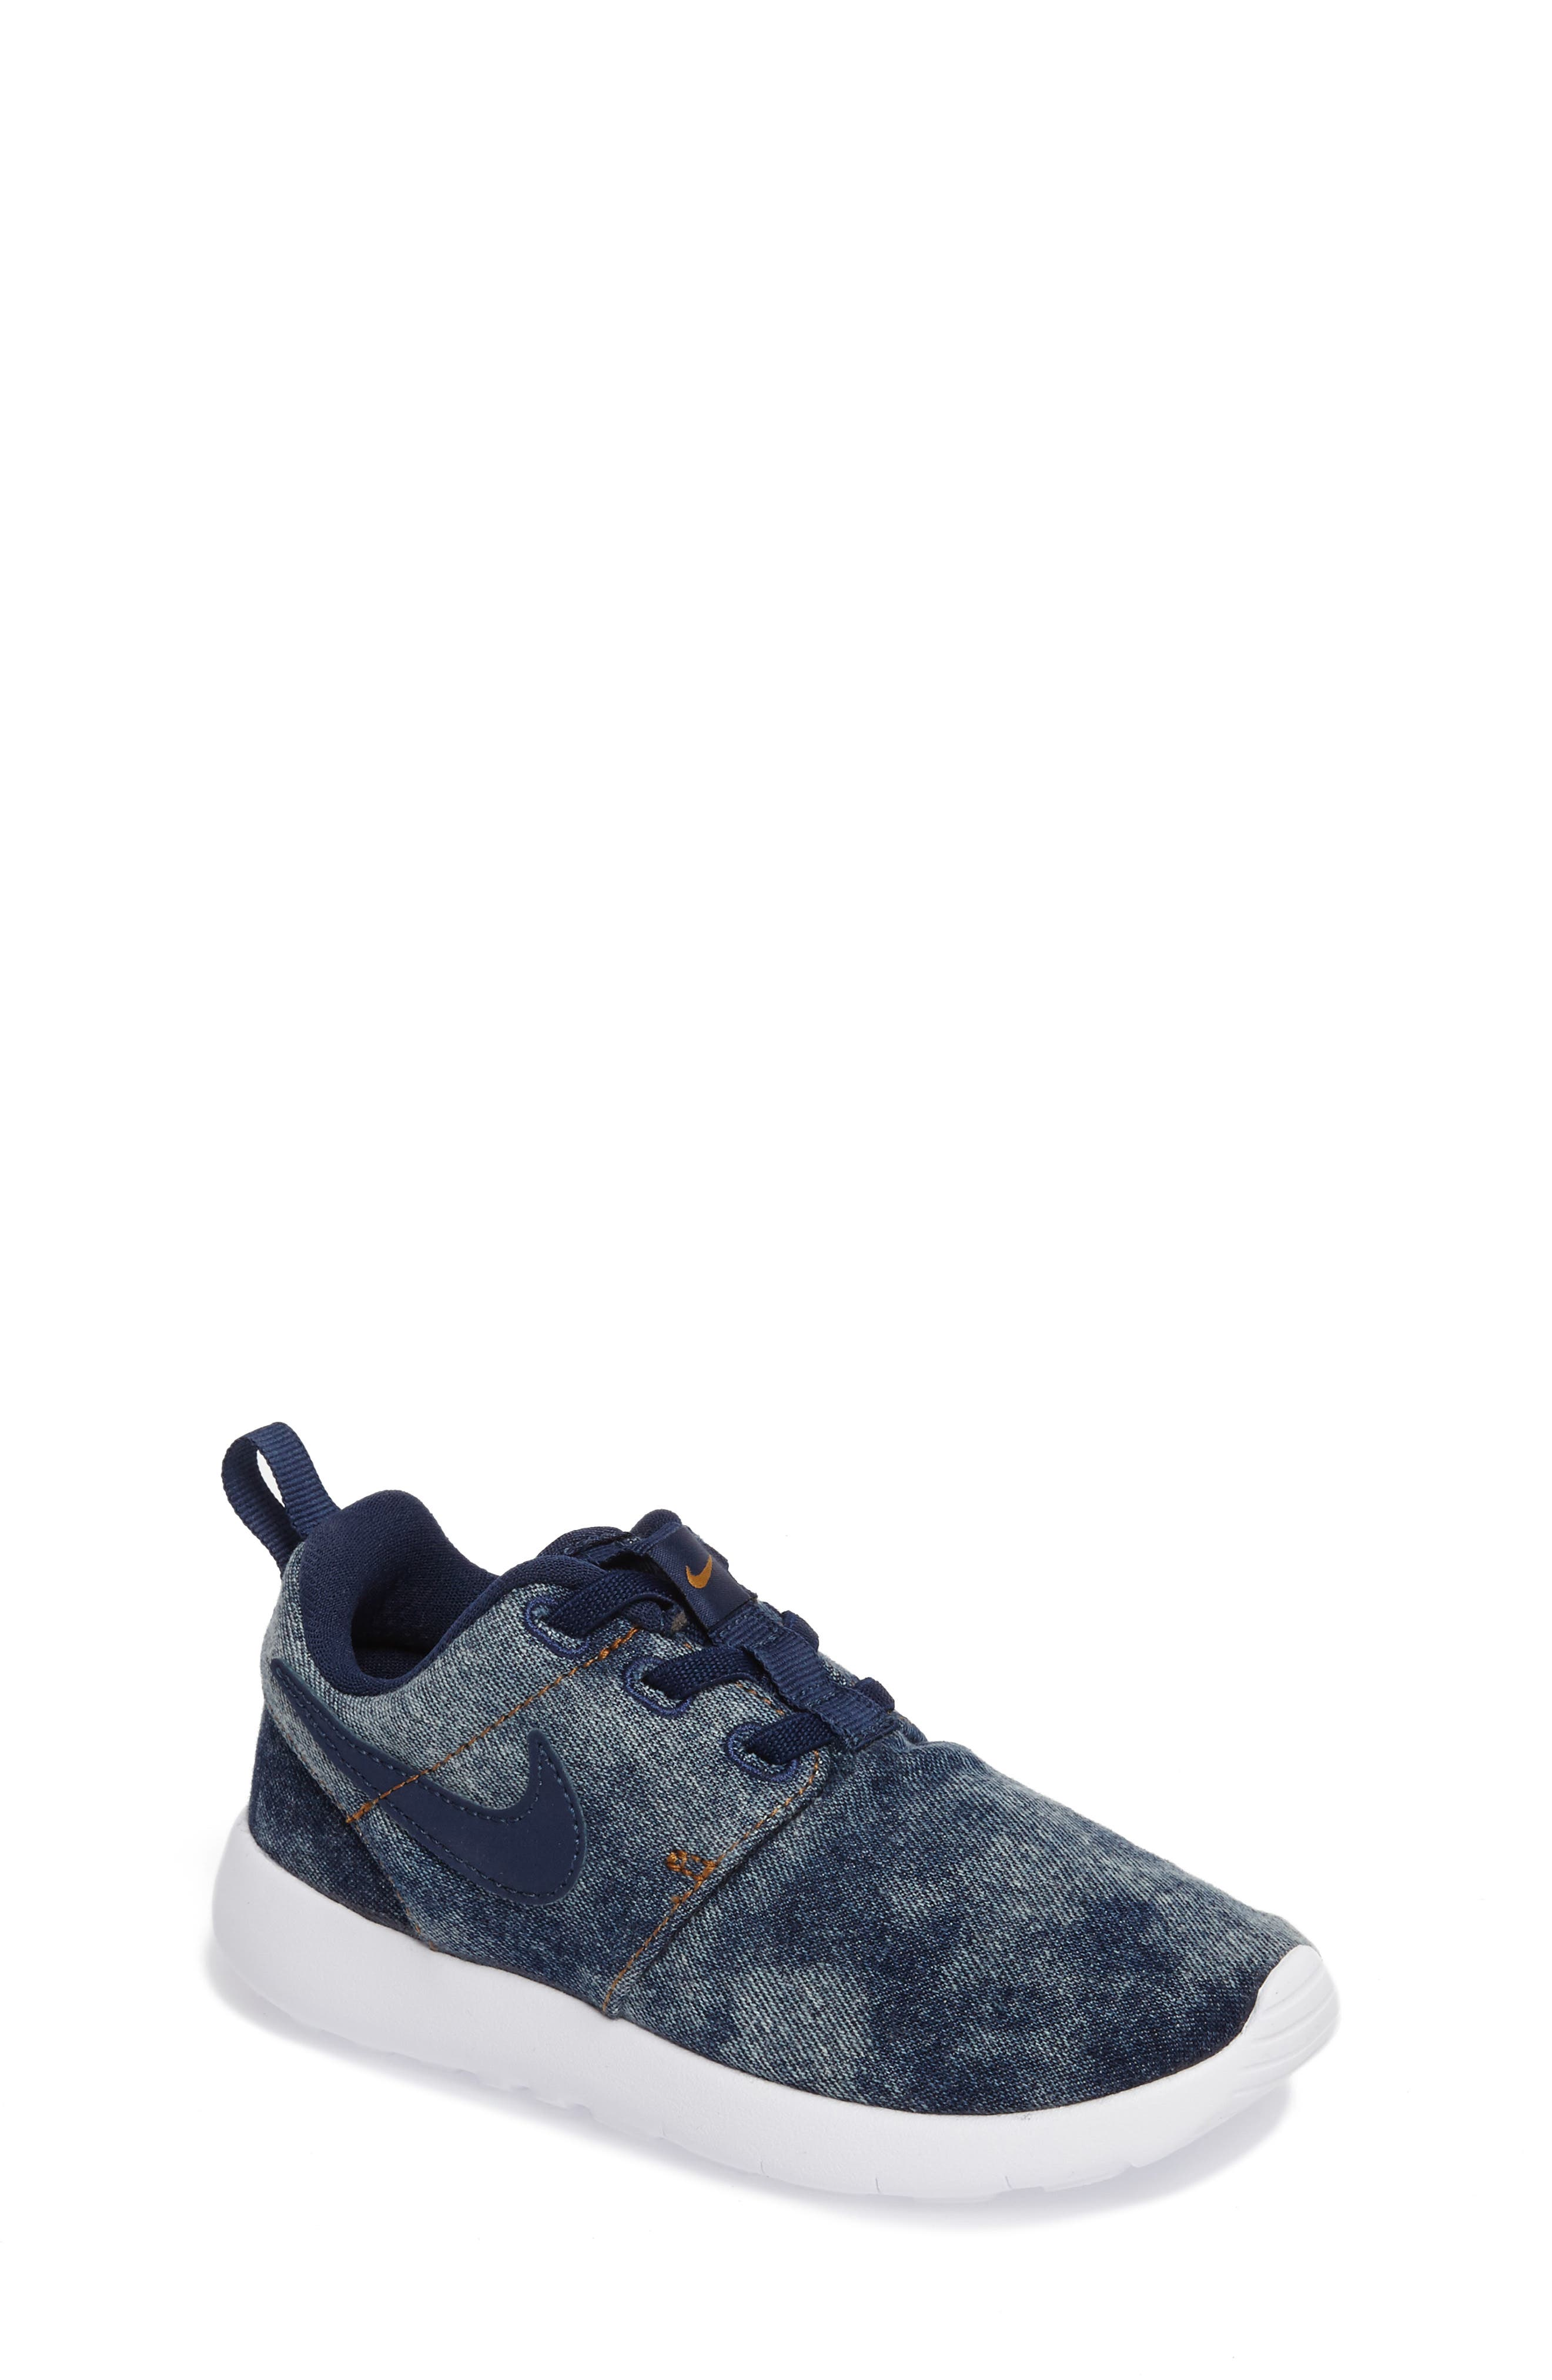 Nike Roshe One SE Sneaker (Baby, Walker & Toddler)